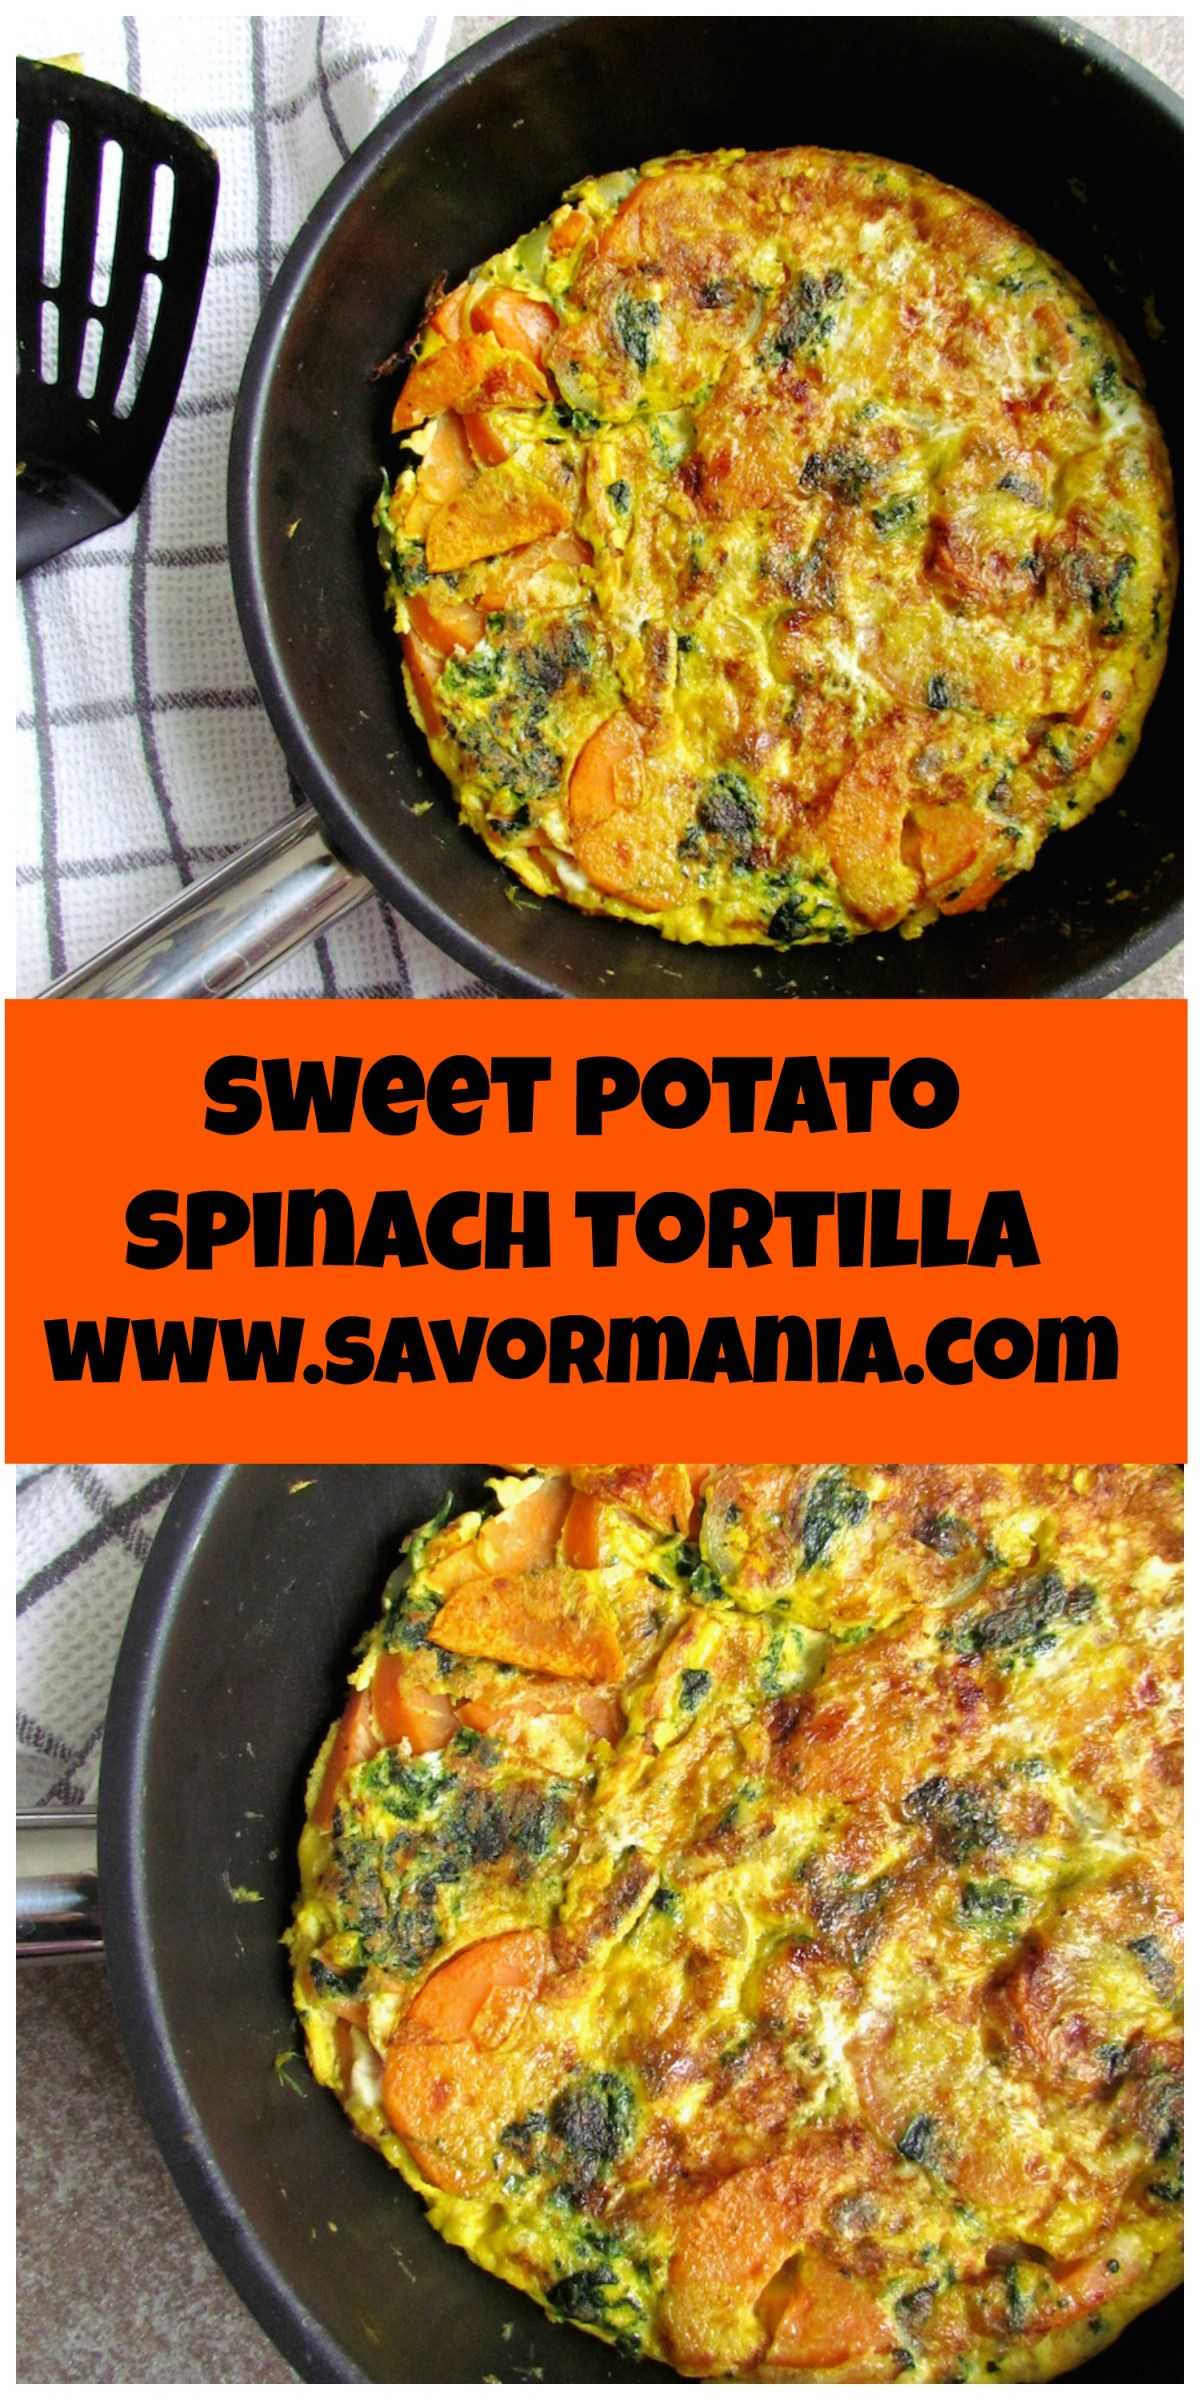 sweet potato and spinach tortilla | www.savormania.com